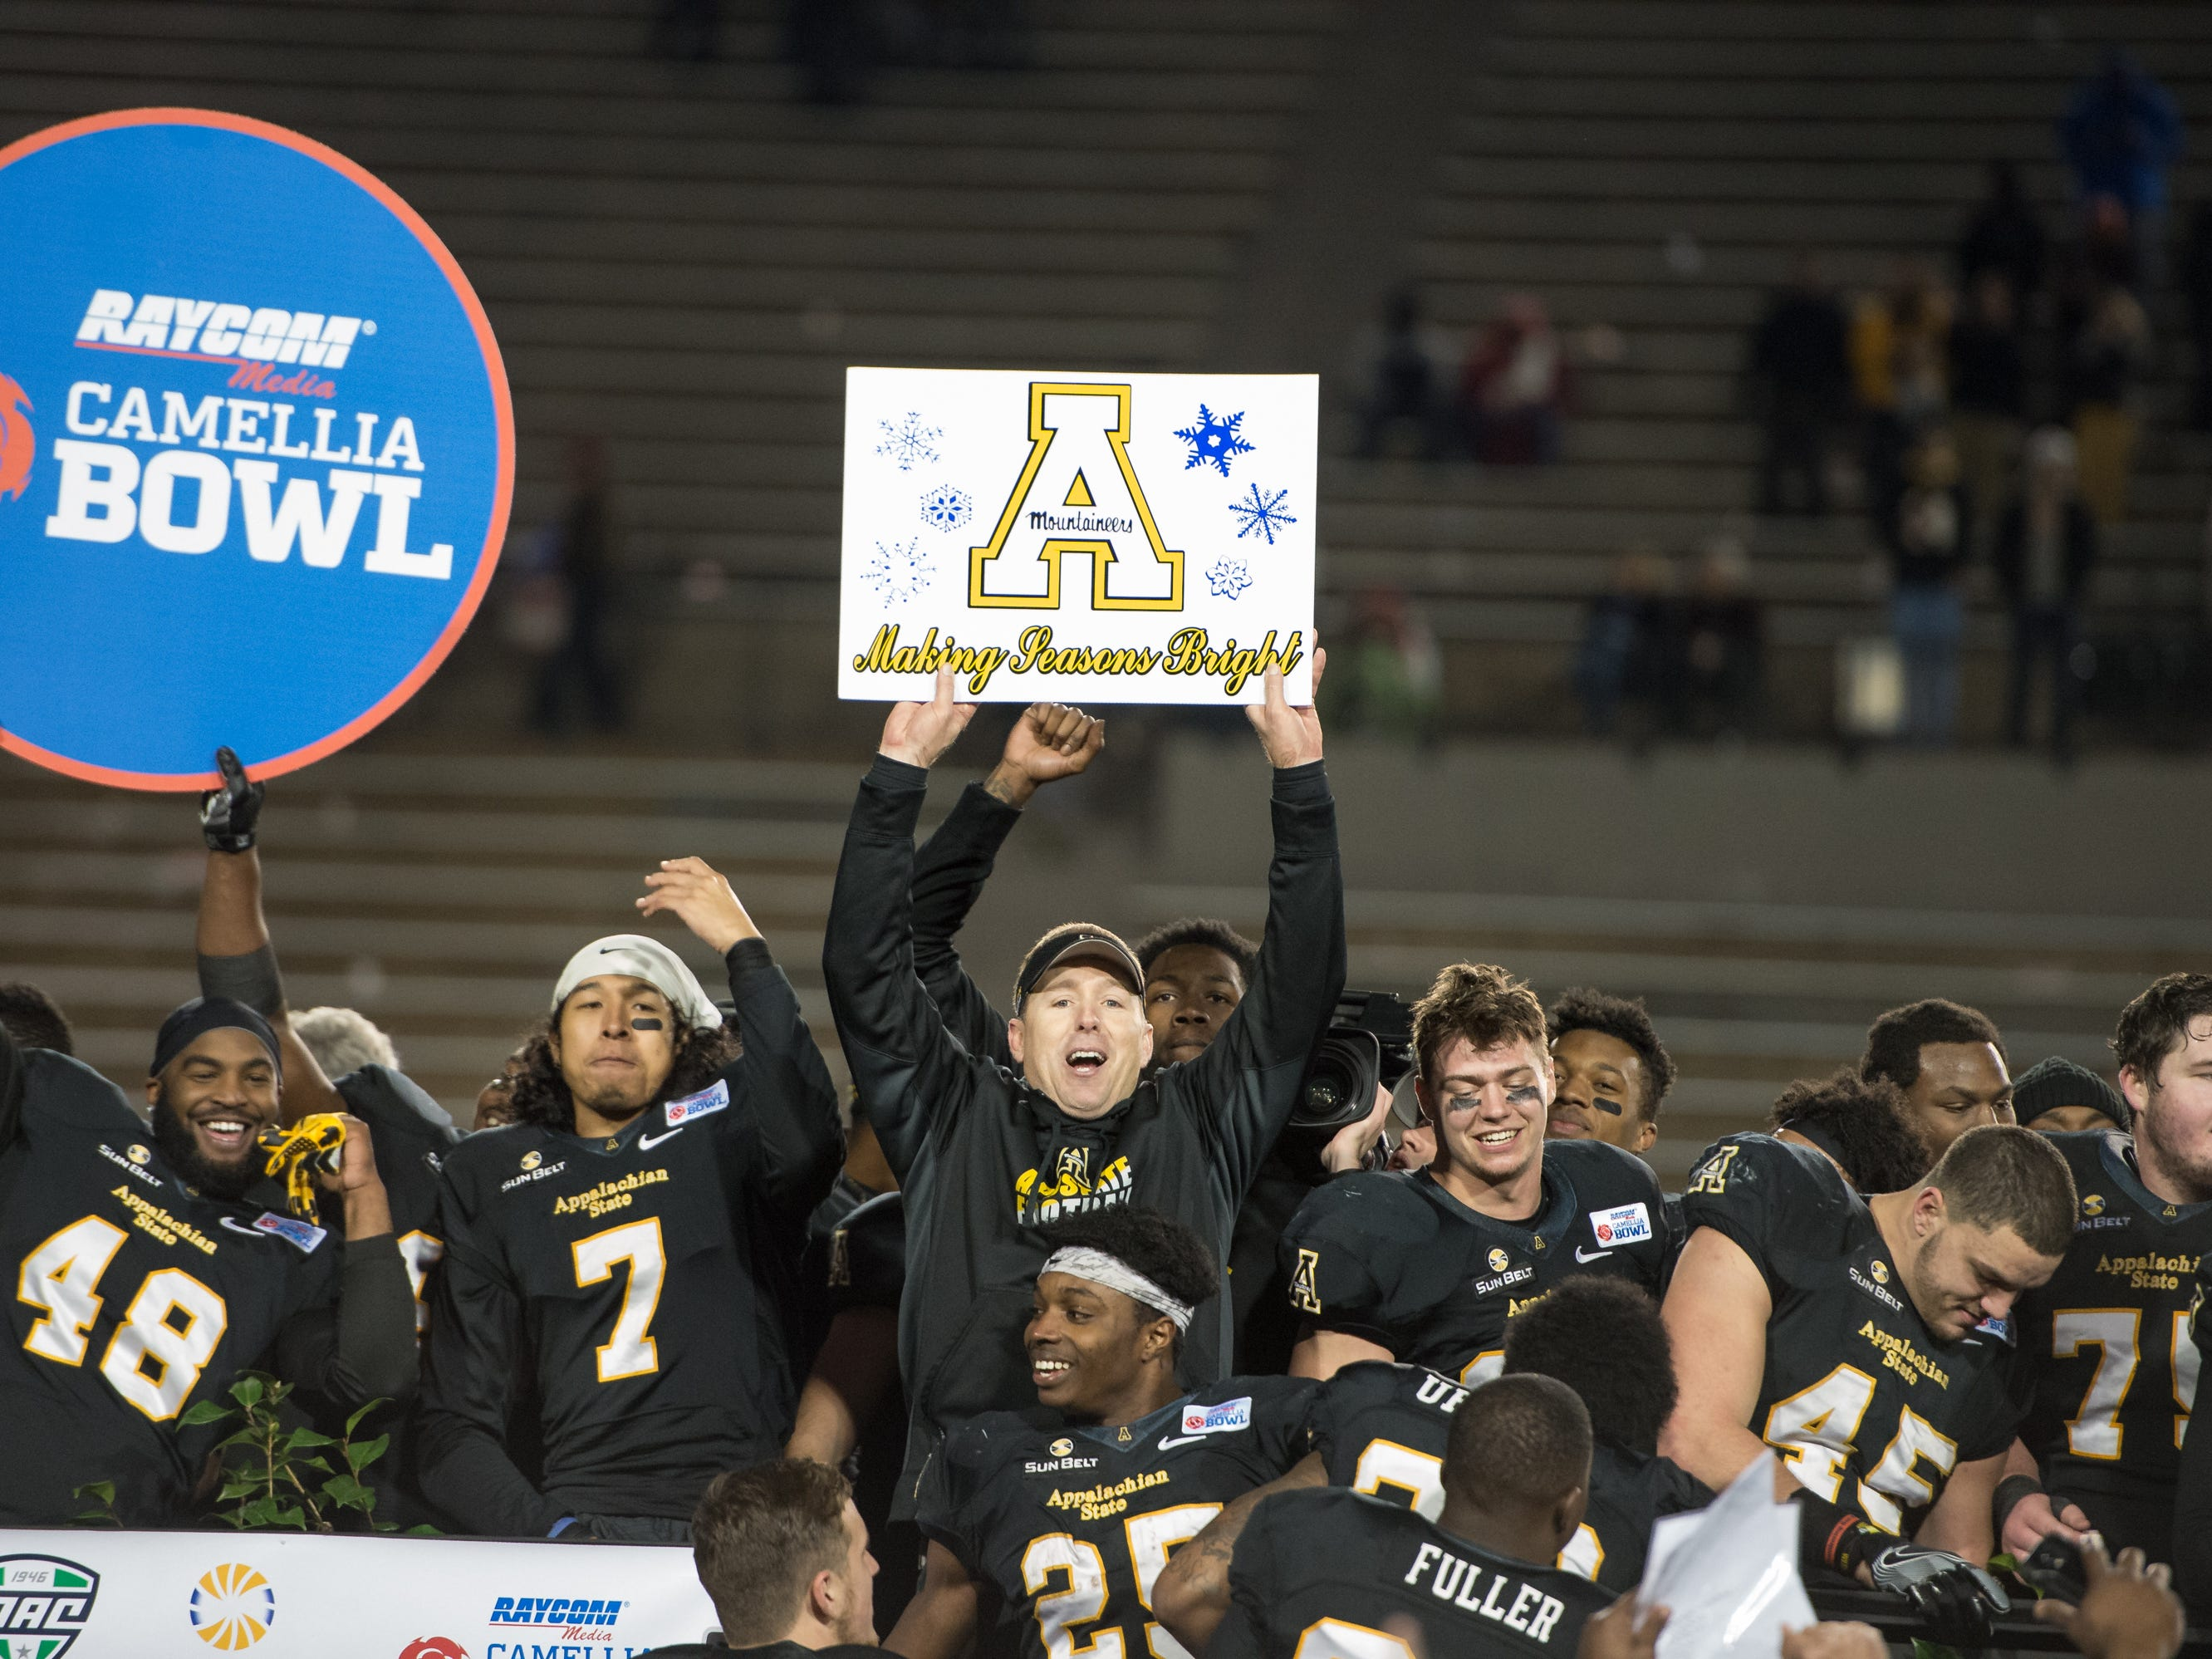 MONTGOMERY, AL - DECEMBER 19: Head coach Scott Satterfield # of the Appalachian State Mountaineers celebrate with his team after defeating the Ohio Bobcats on December 19, 2015 during the Raycom Media Camellia Bowl at the Cramton Bowl in Montgomery, Alabama. The Appalachian State Mountaineers defeated the Ohio Bobcats 31-29.  (Photo by Michael Chang/Getty Images)